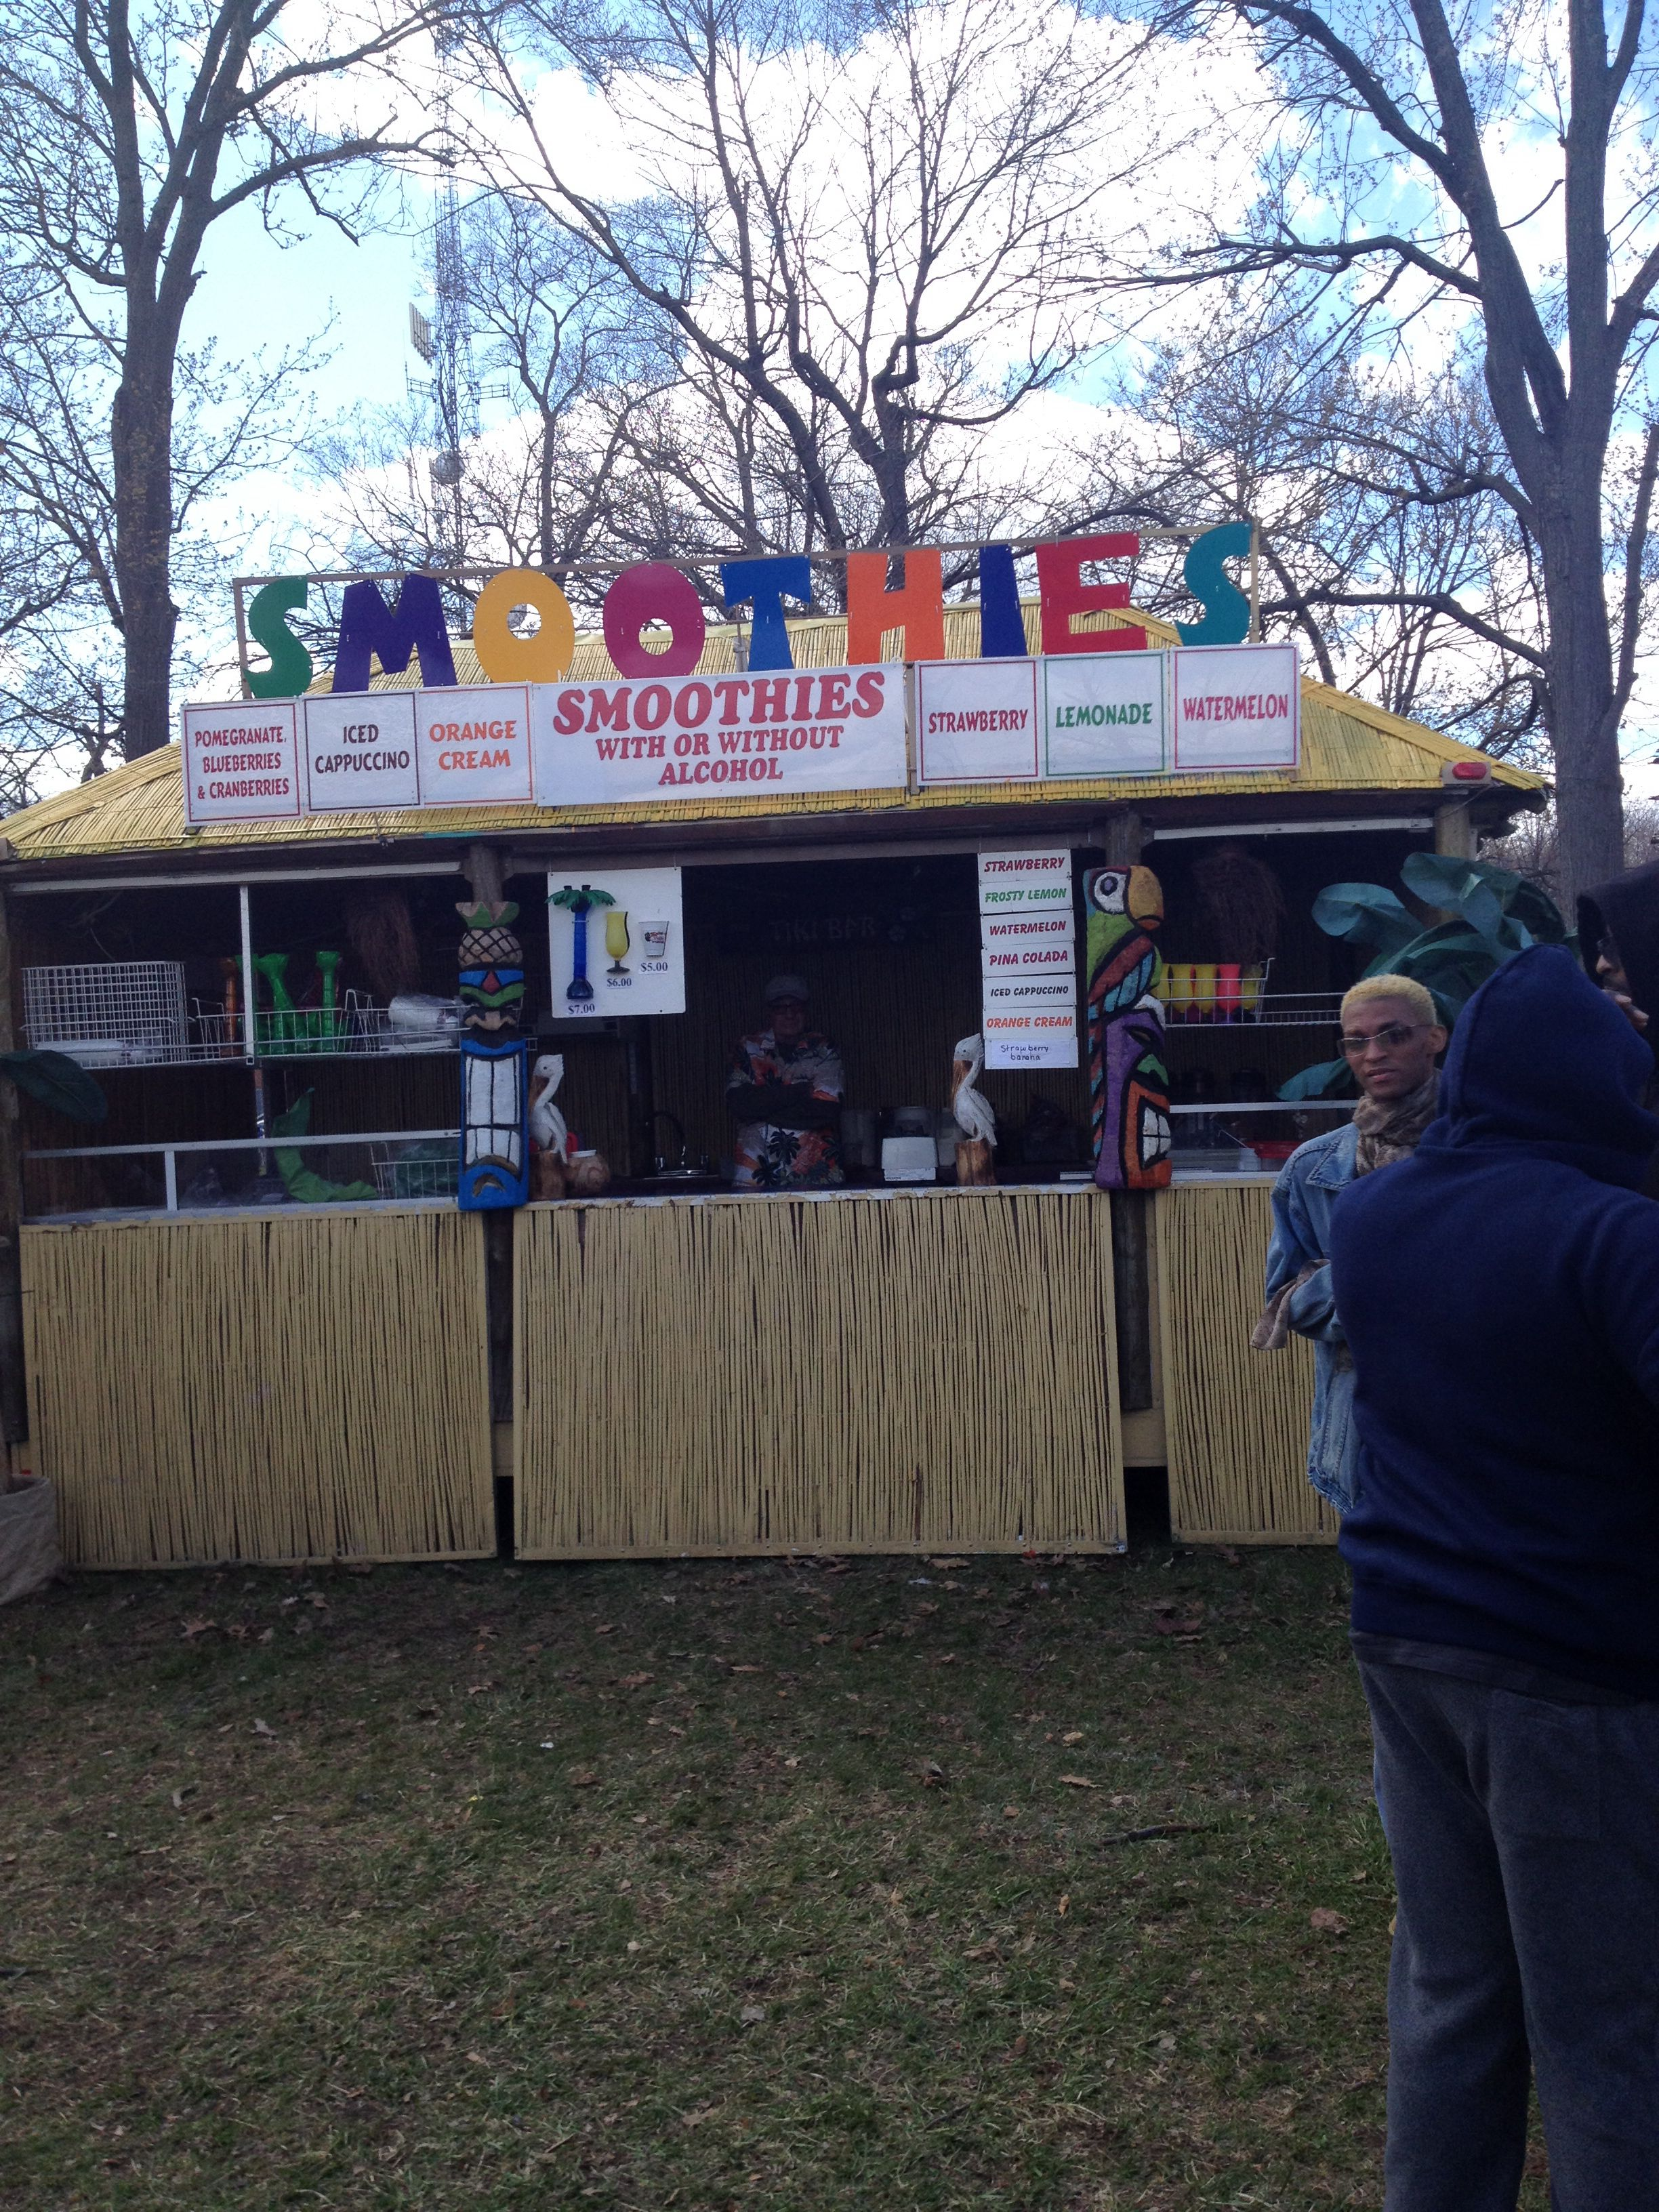 Smoothies #palmerparkartfair